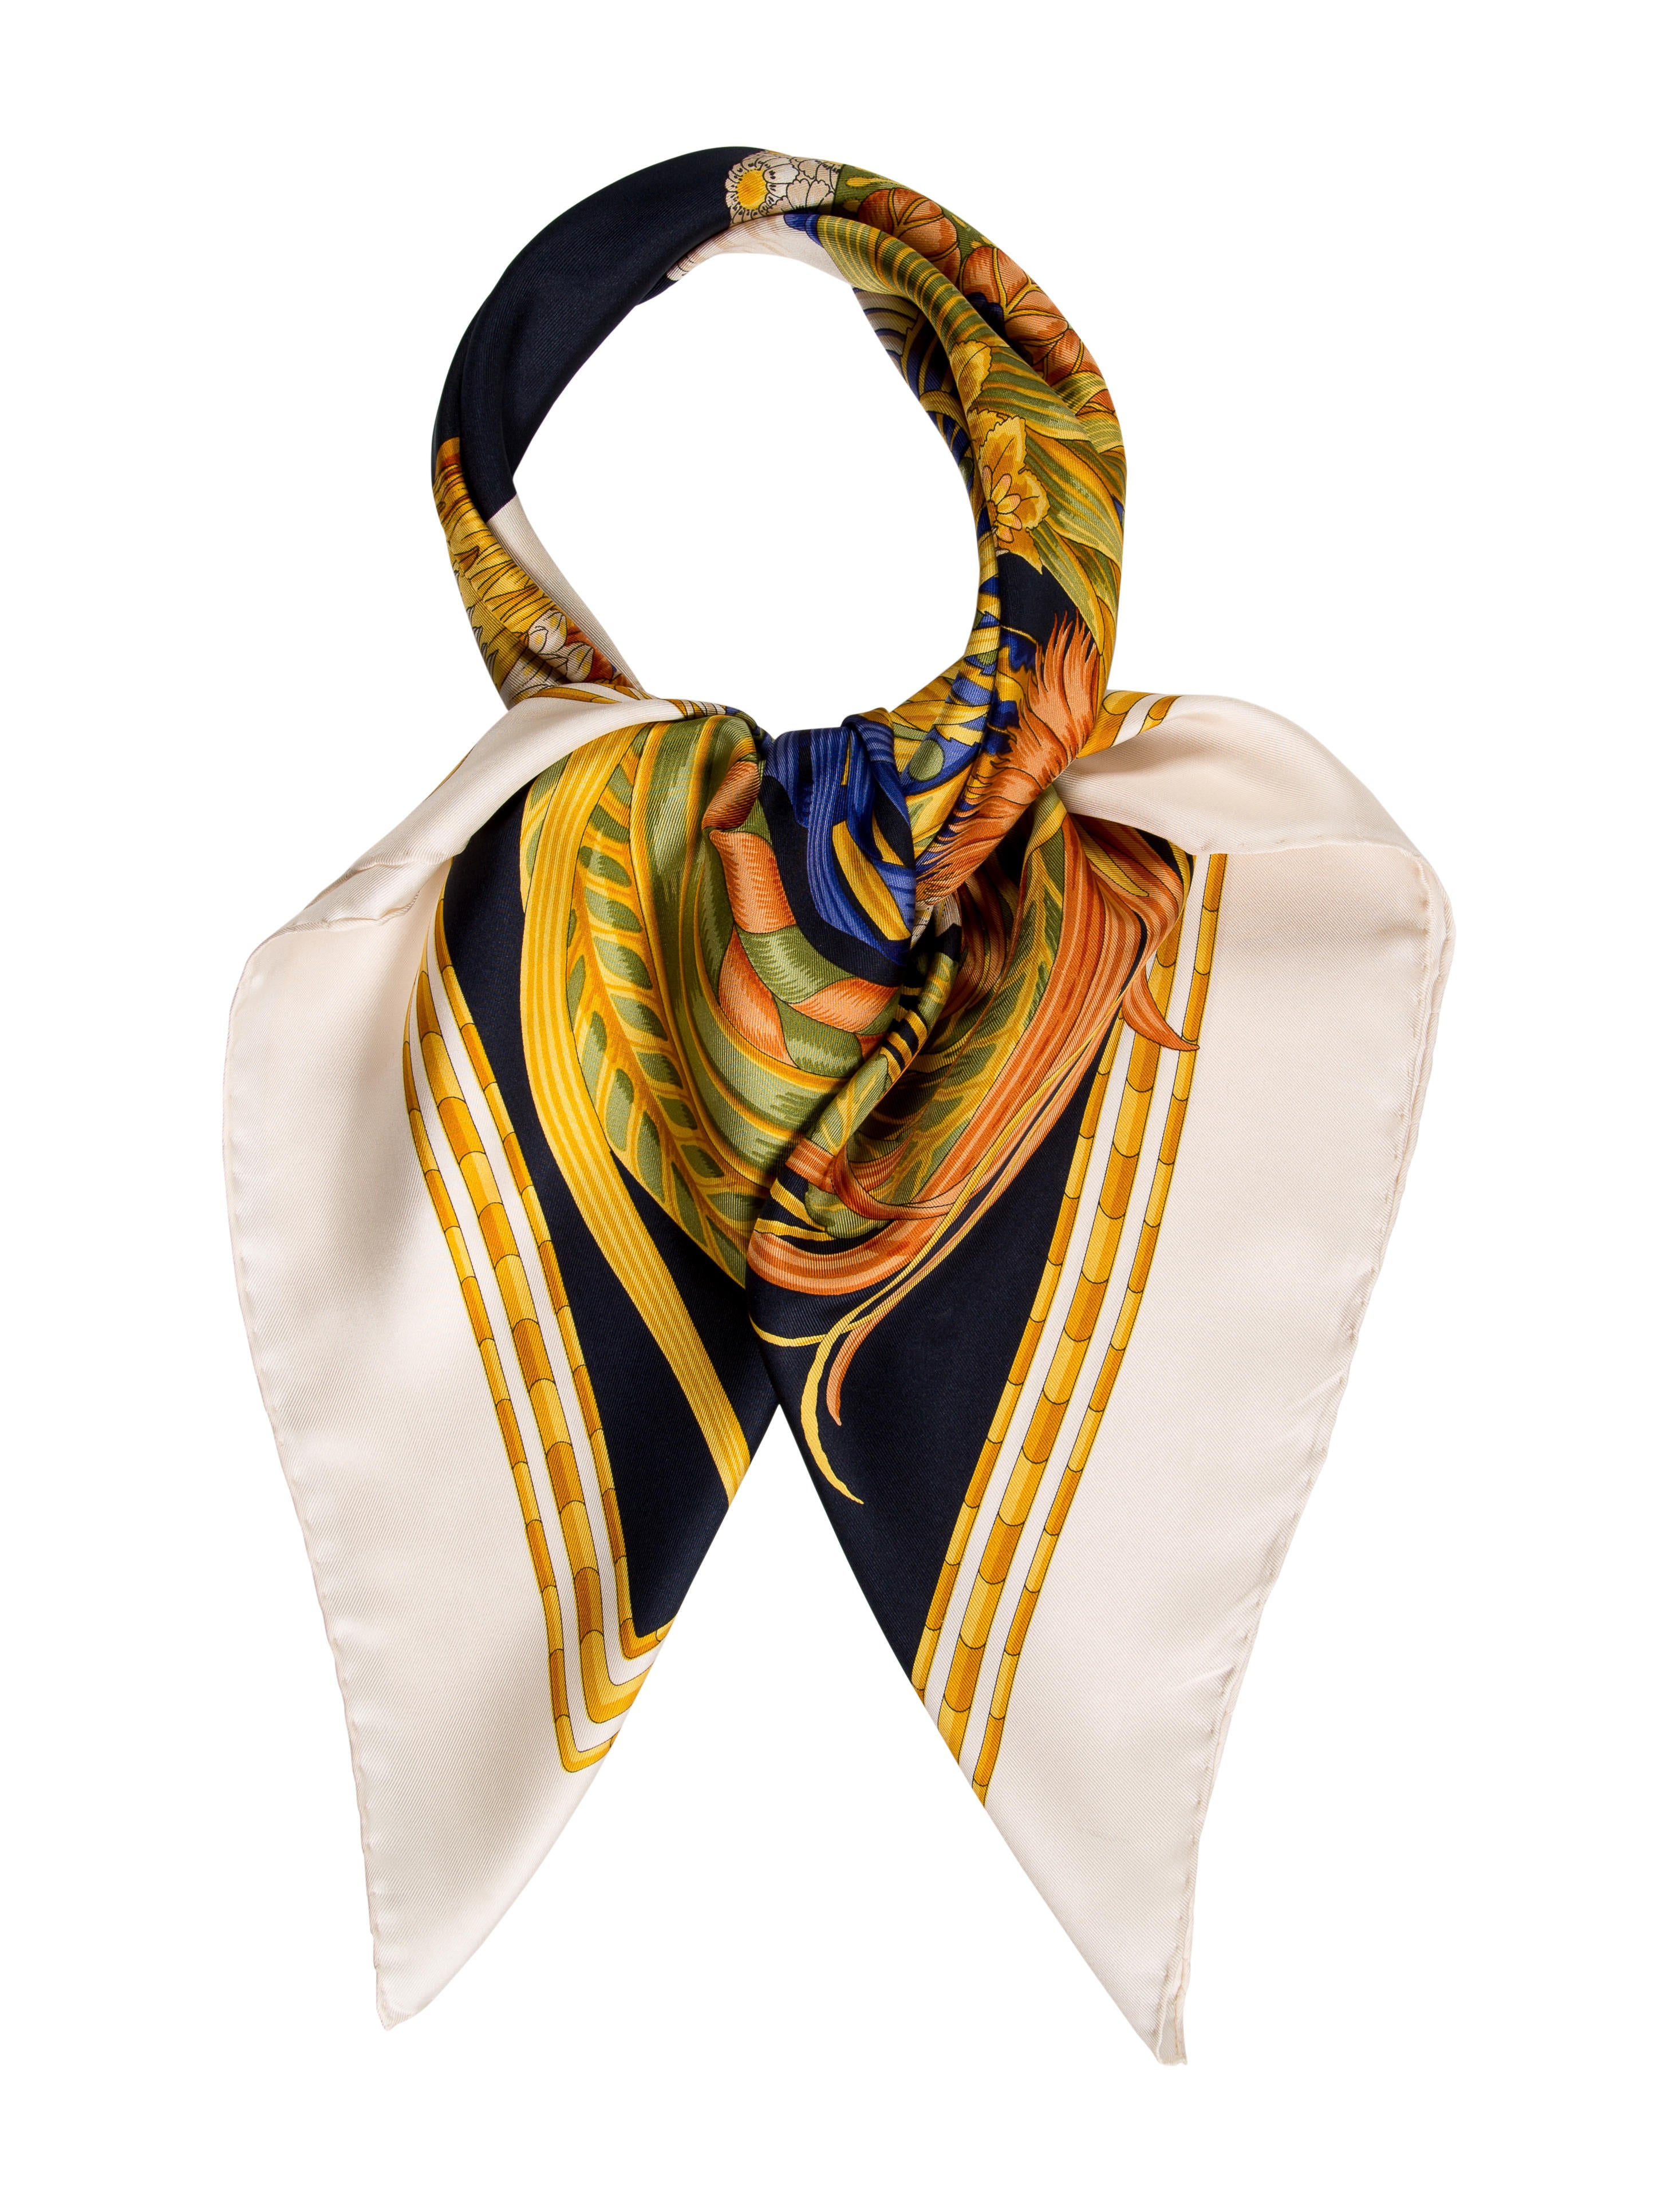 Find printed silk scarves at ShopStyle. Shop the latest collection of printed silk scarves from the most popular stores - all in one place.